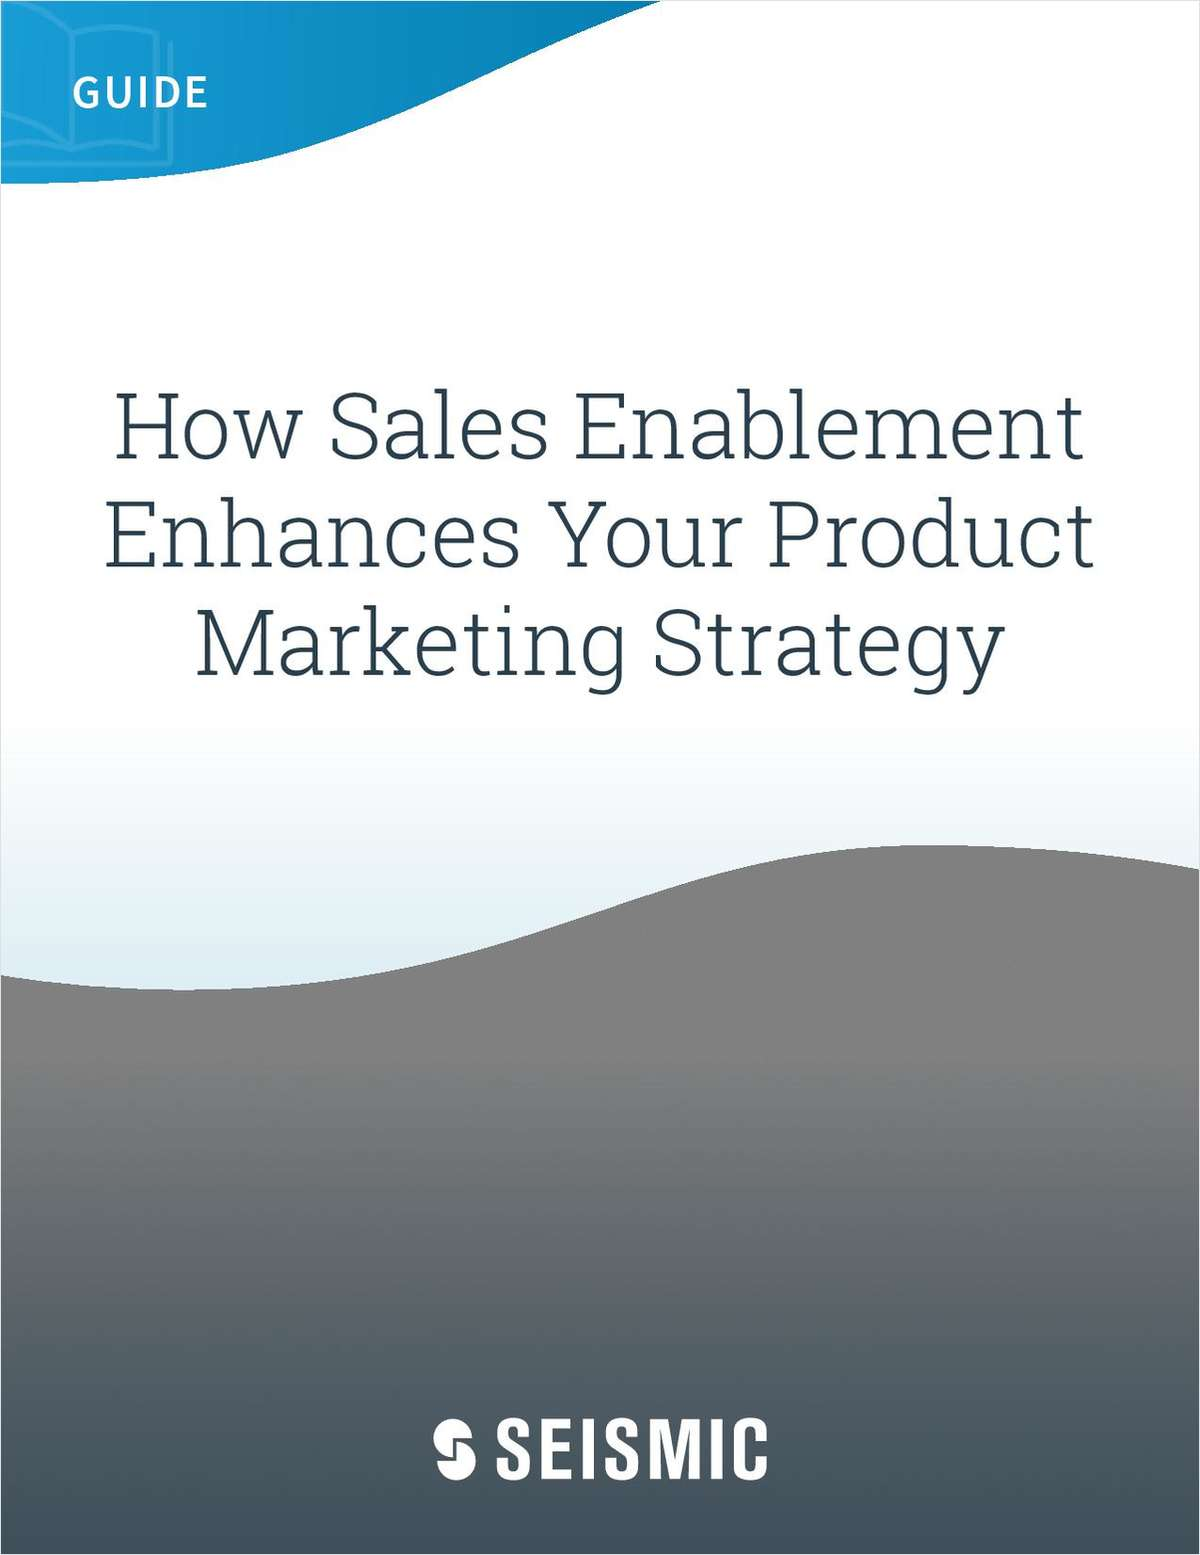 How Sales Enablement Enhances Your Product Marketing Strategy